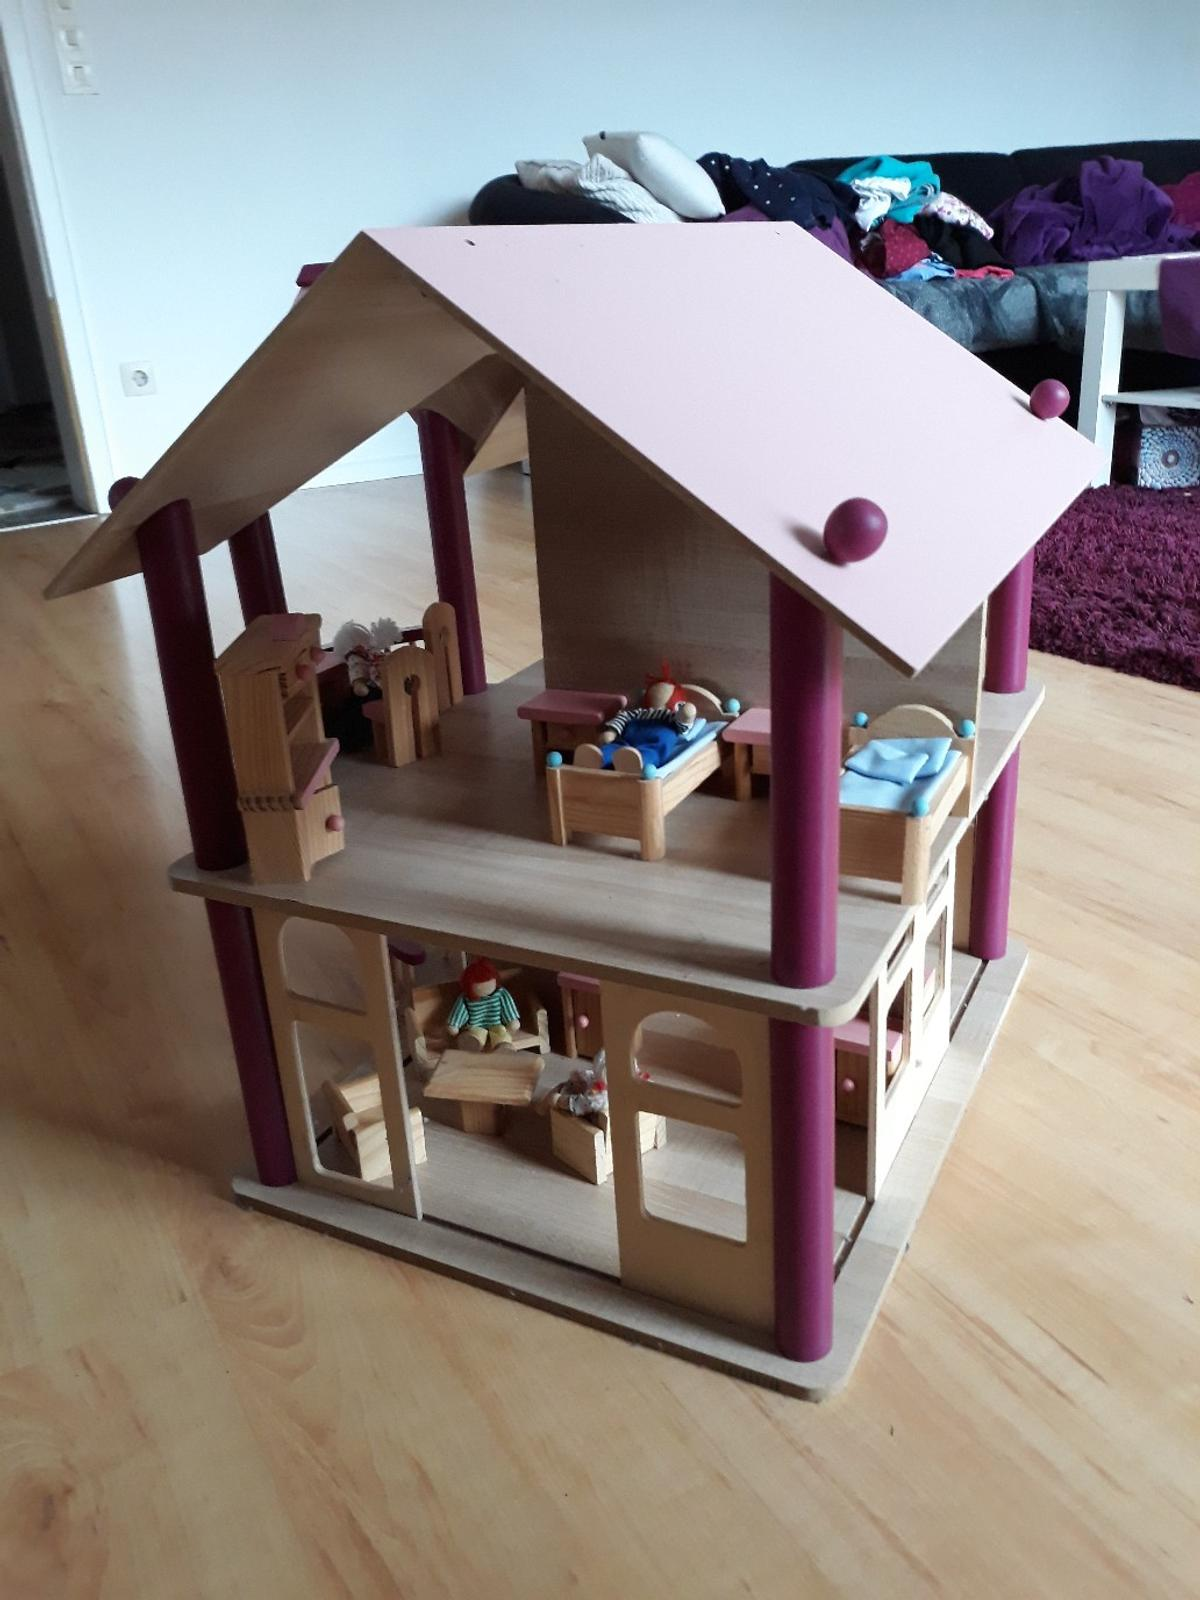 Dating-Triang-Puppen-Haus